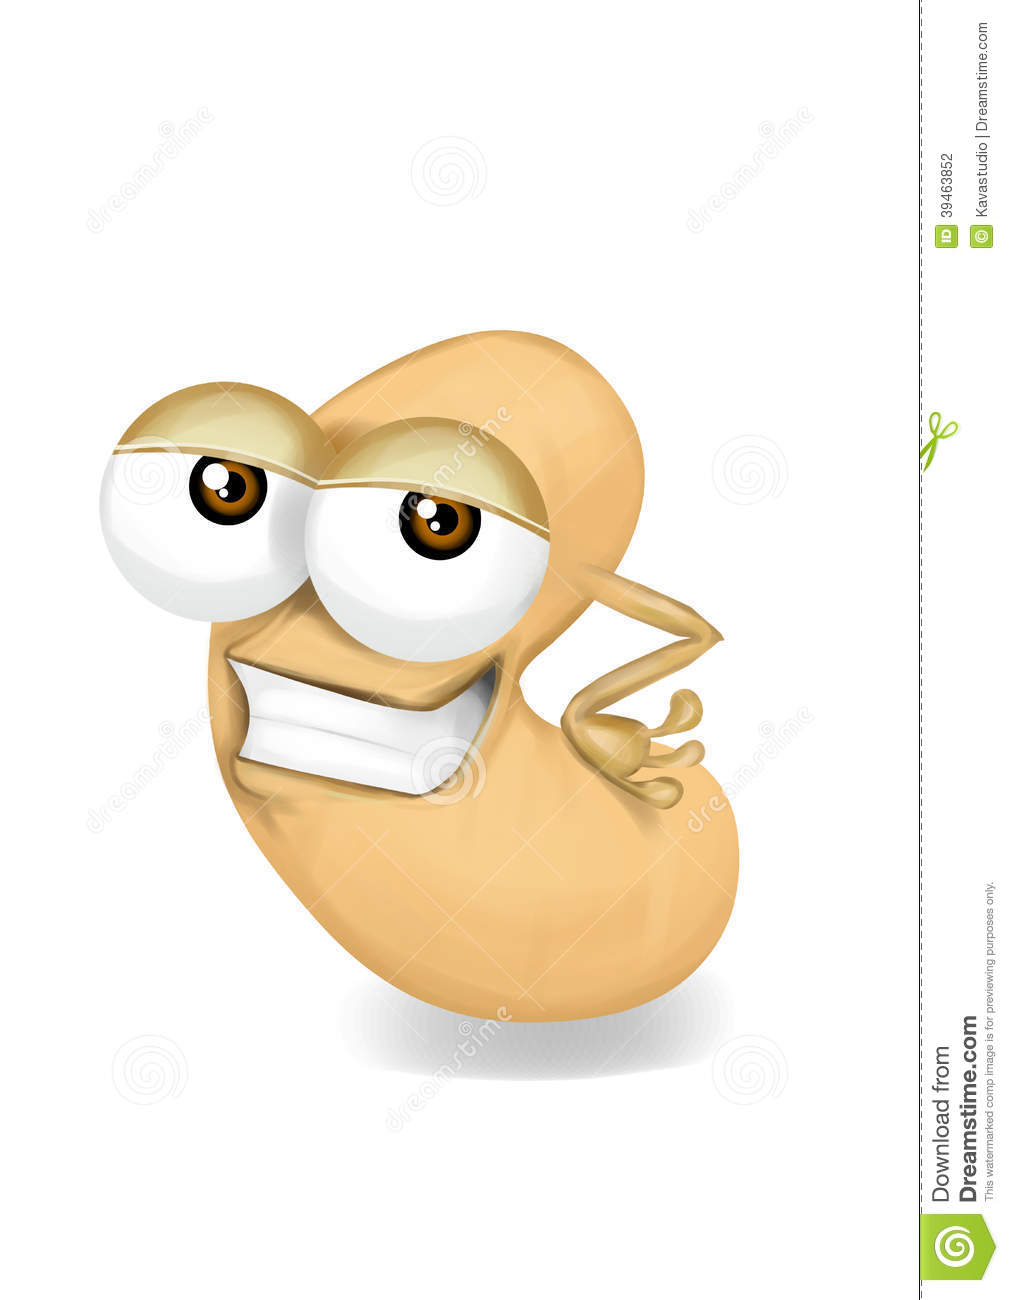 cool beige cashew cartoon character sly eyes stock